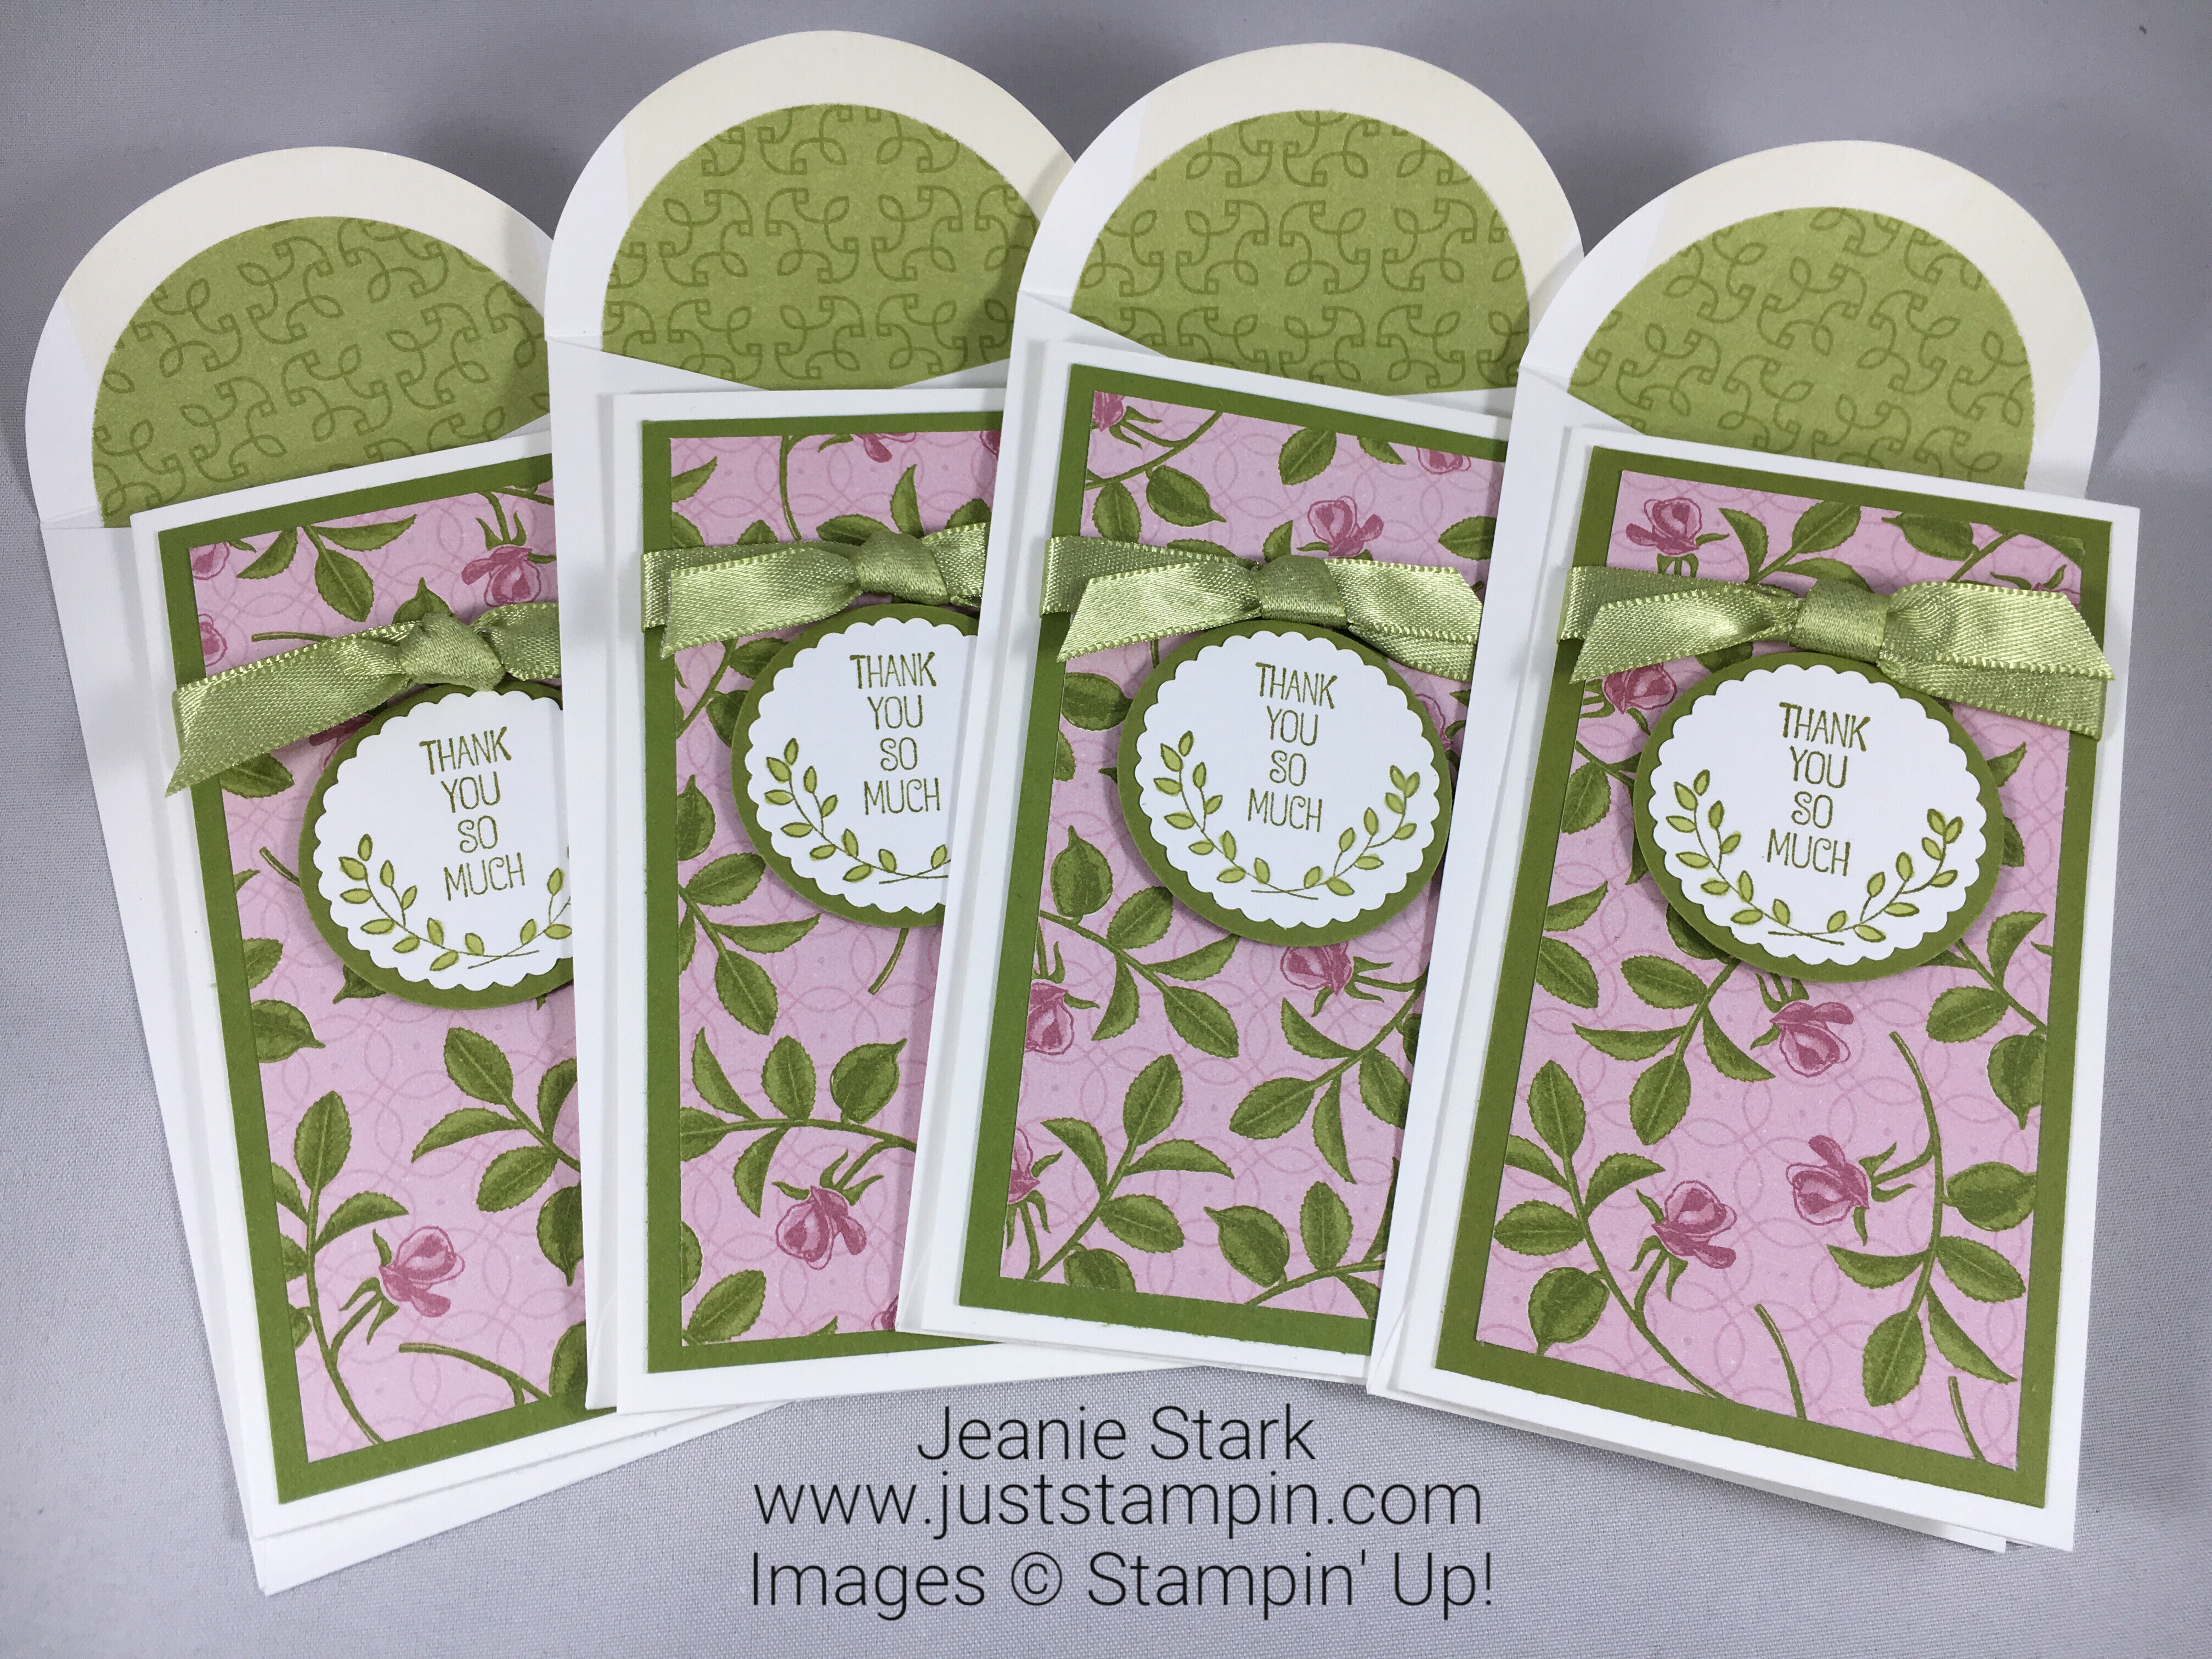 Stampin Up Thank you card ideas using Narrow Note Cards and Petal Garden Designer Series Paper - Jeanie Stark StampinUp